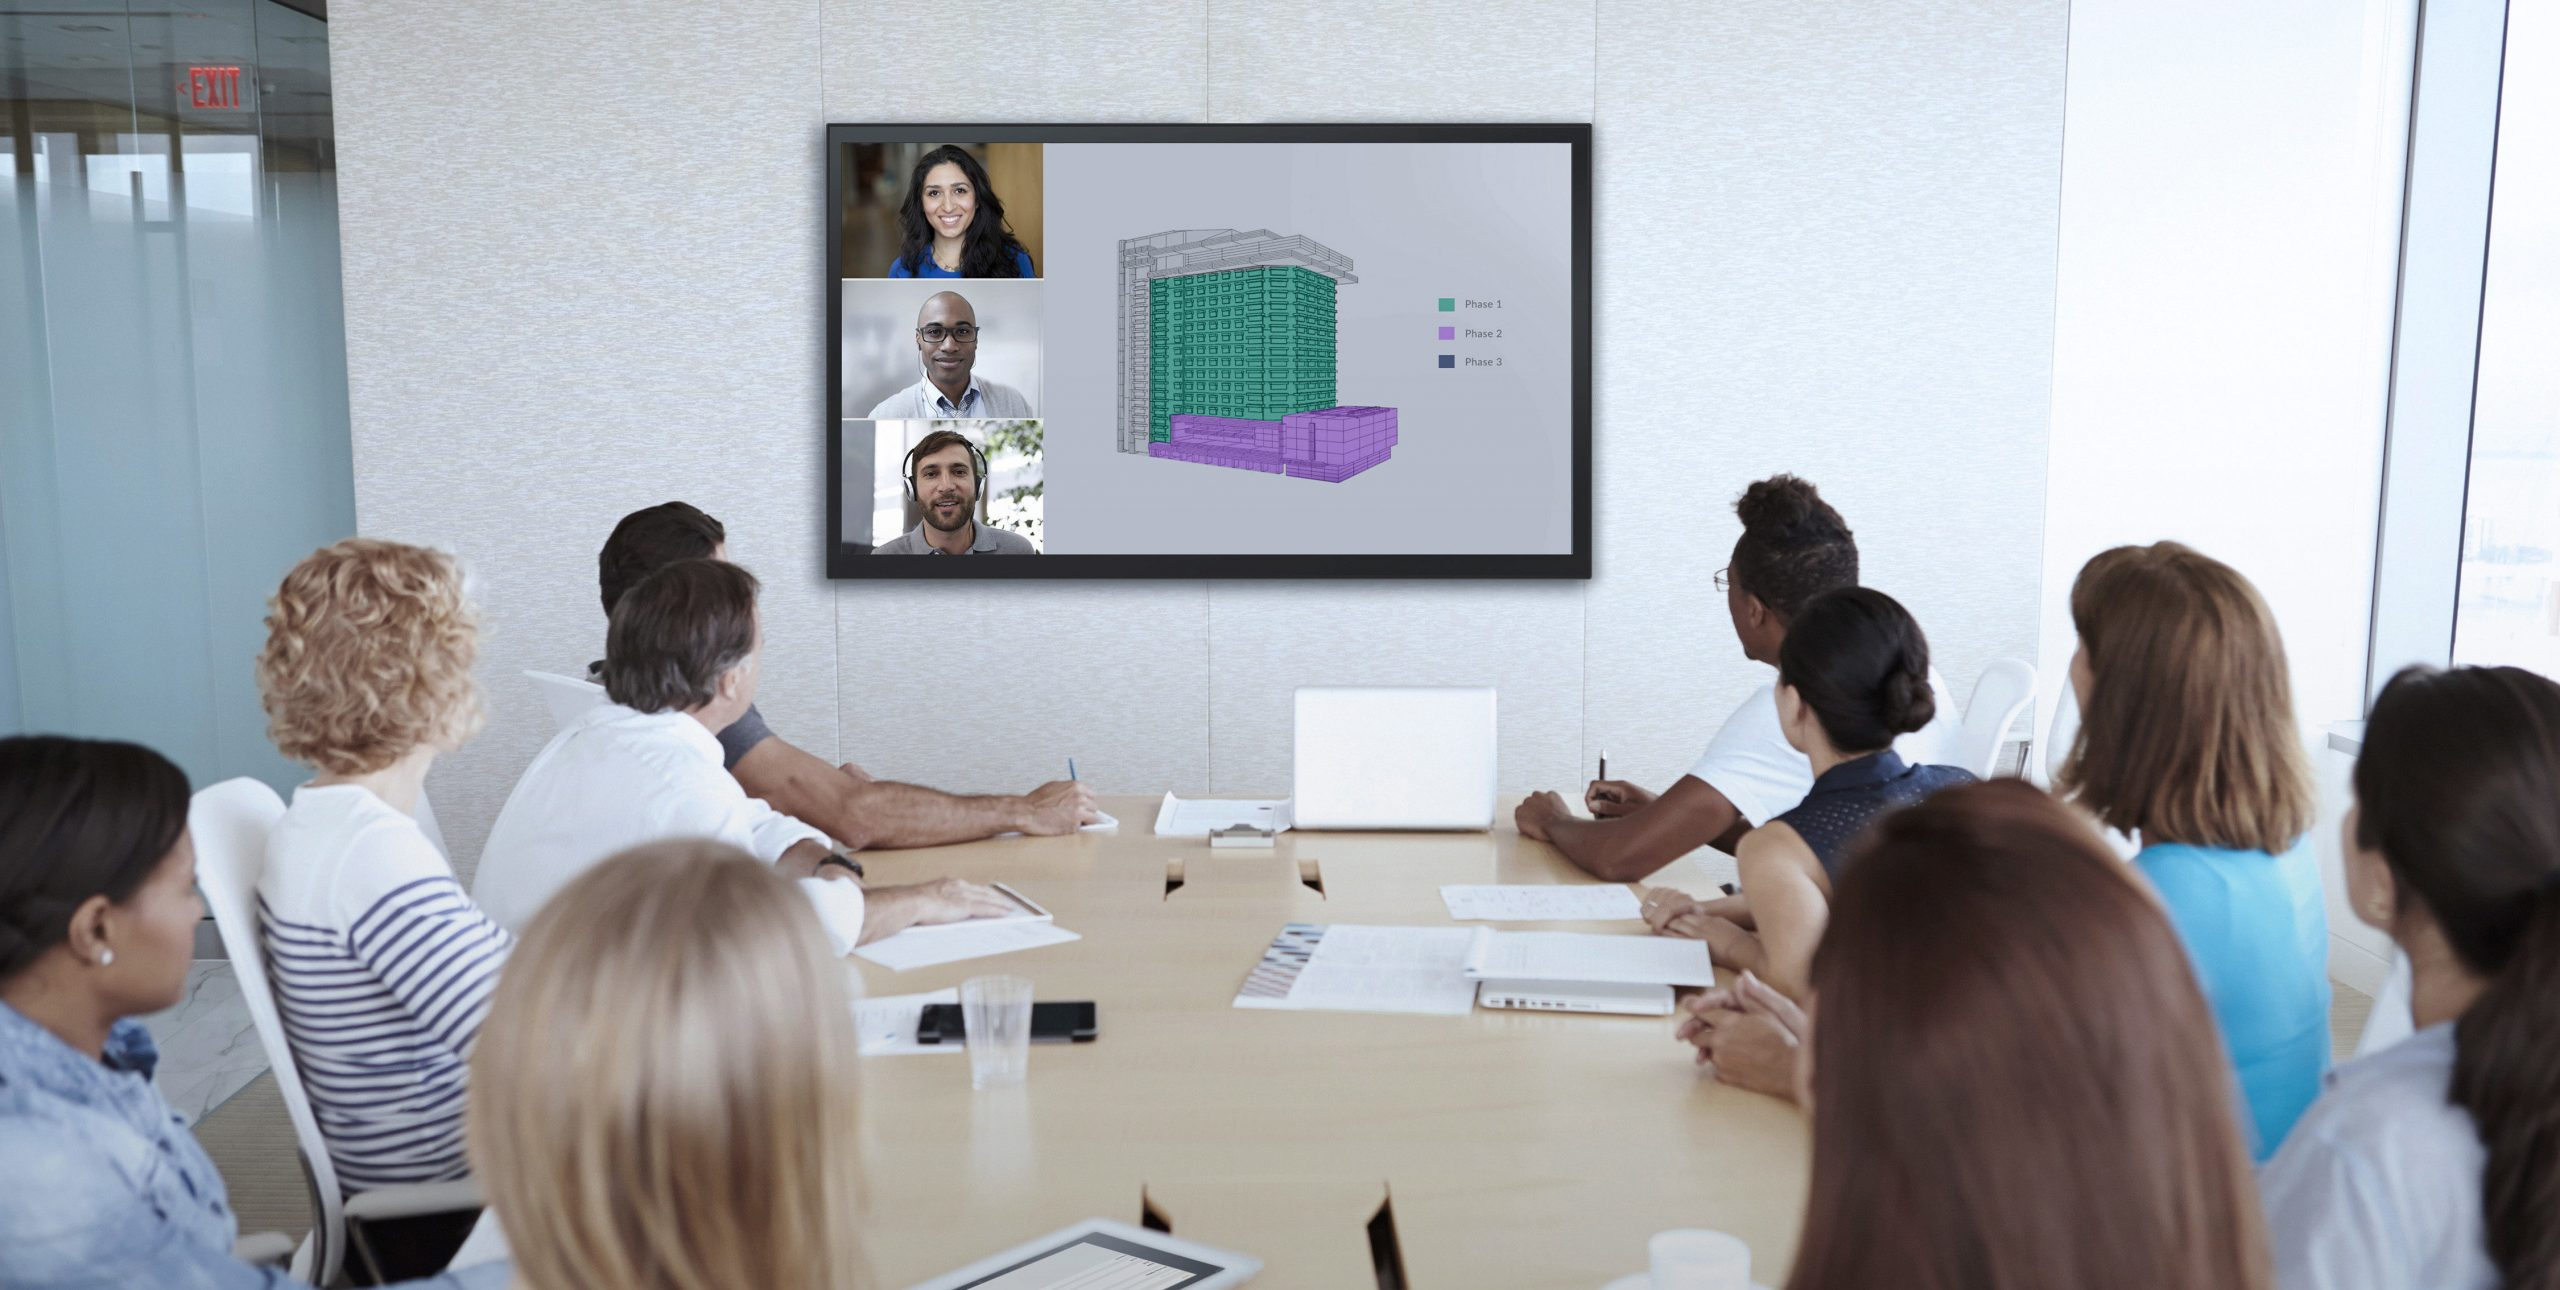 GoToMeeting Room systems and video conferencing usb equipment for professional gotomeeting rooms